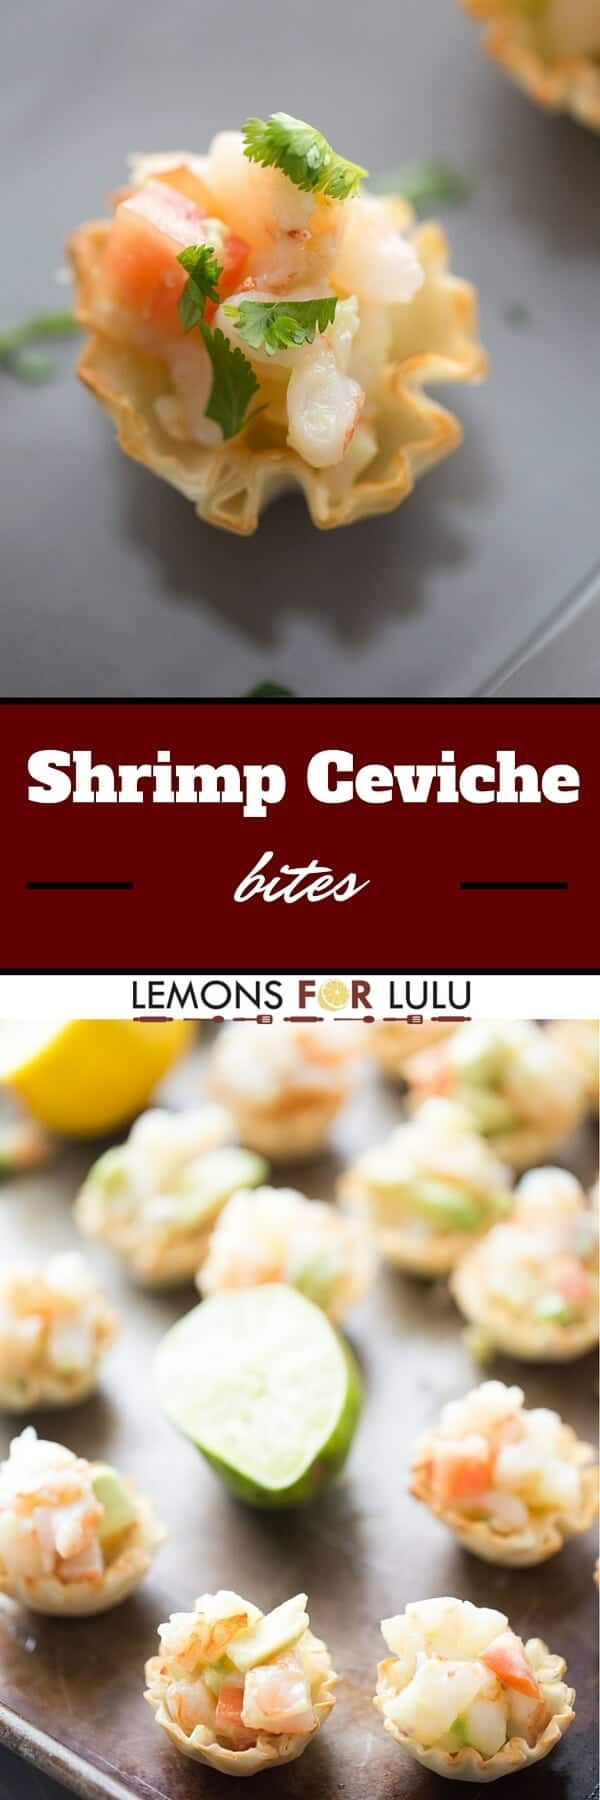 Every party needs simple appetizers and that's exactly what this shrimp ceviche is; simple! It's made with fresh ingredients and tastes so light and refreshing!